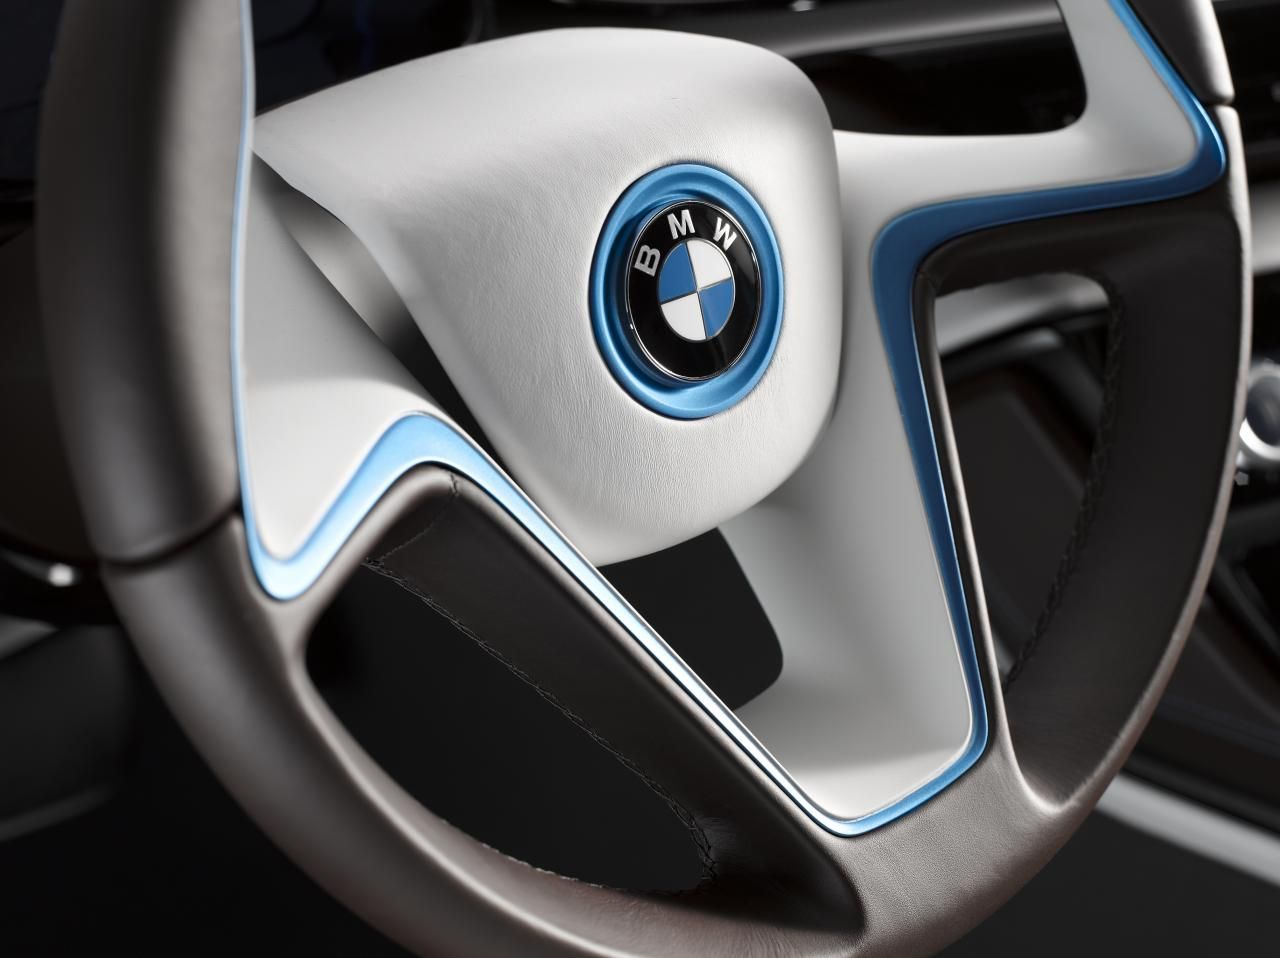 2011 Bmw I8 Concept Bmw I8 Pinterest Bmw Bmw I8 And Cars